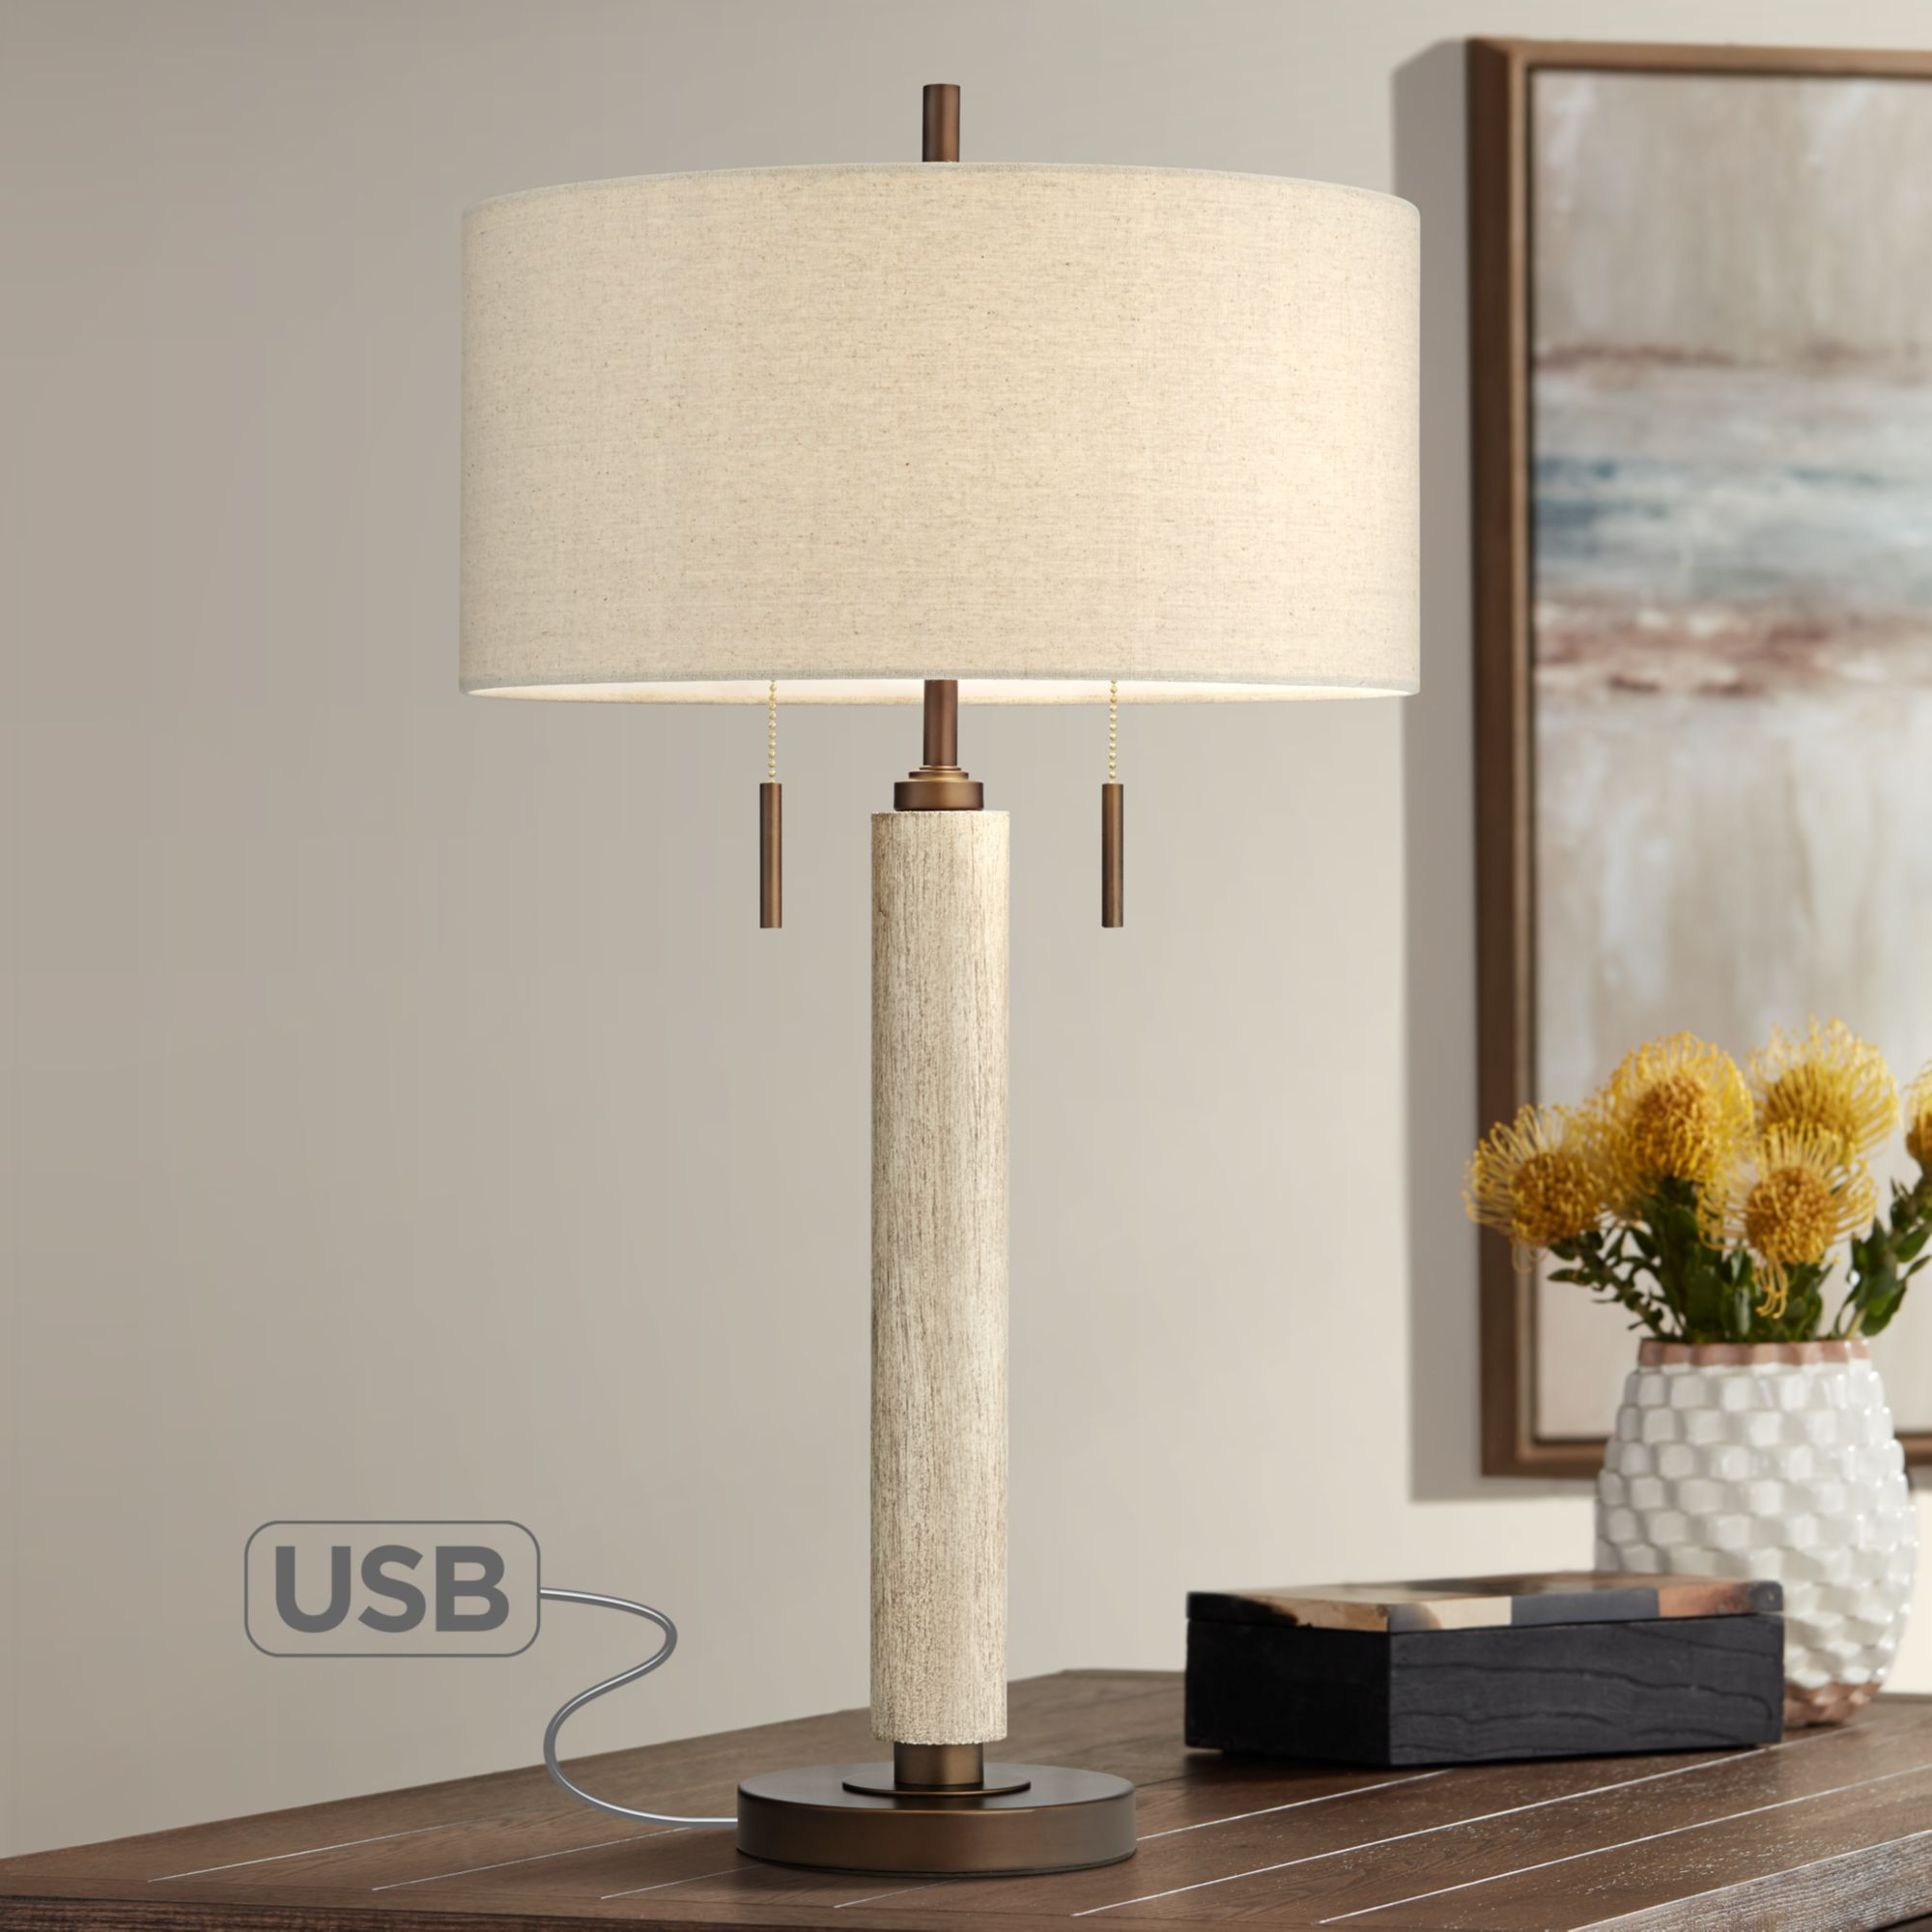 Franklin Iron Works Hugo Wood Column Table Lamp with USB Port